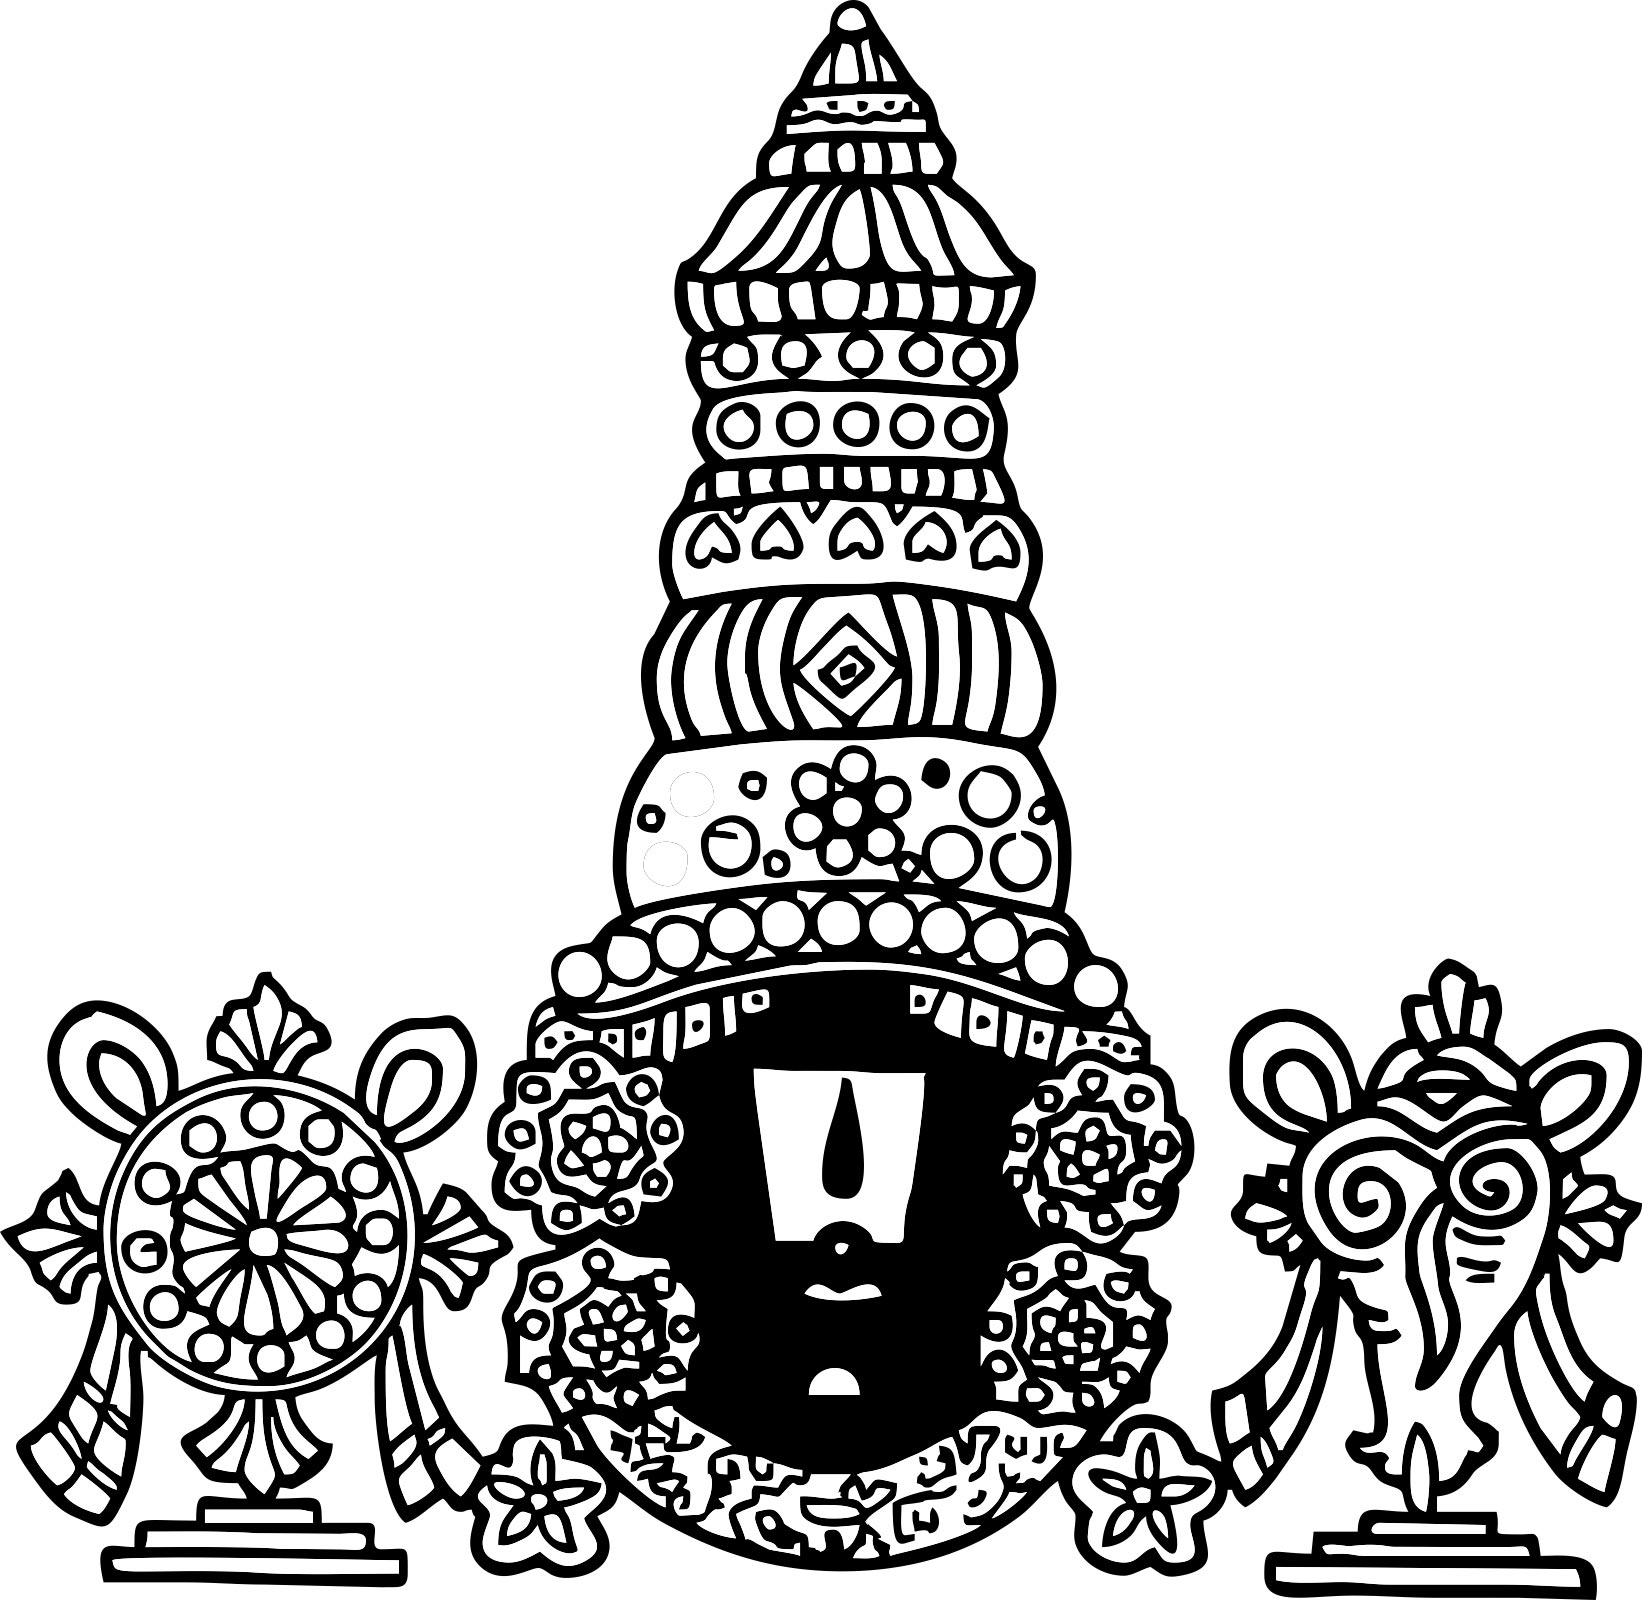 venkateswara swamy images free download auto design tech